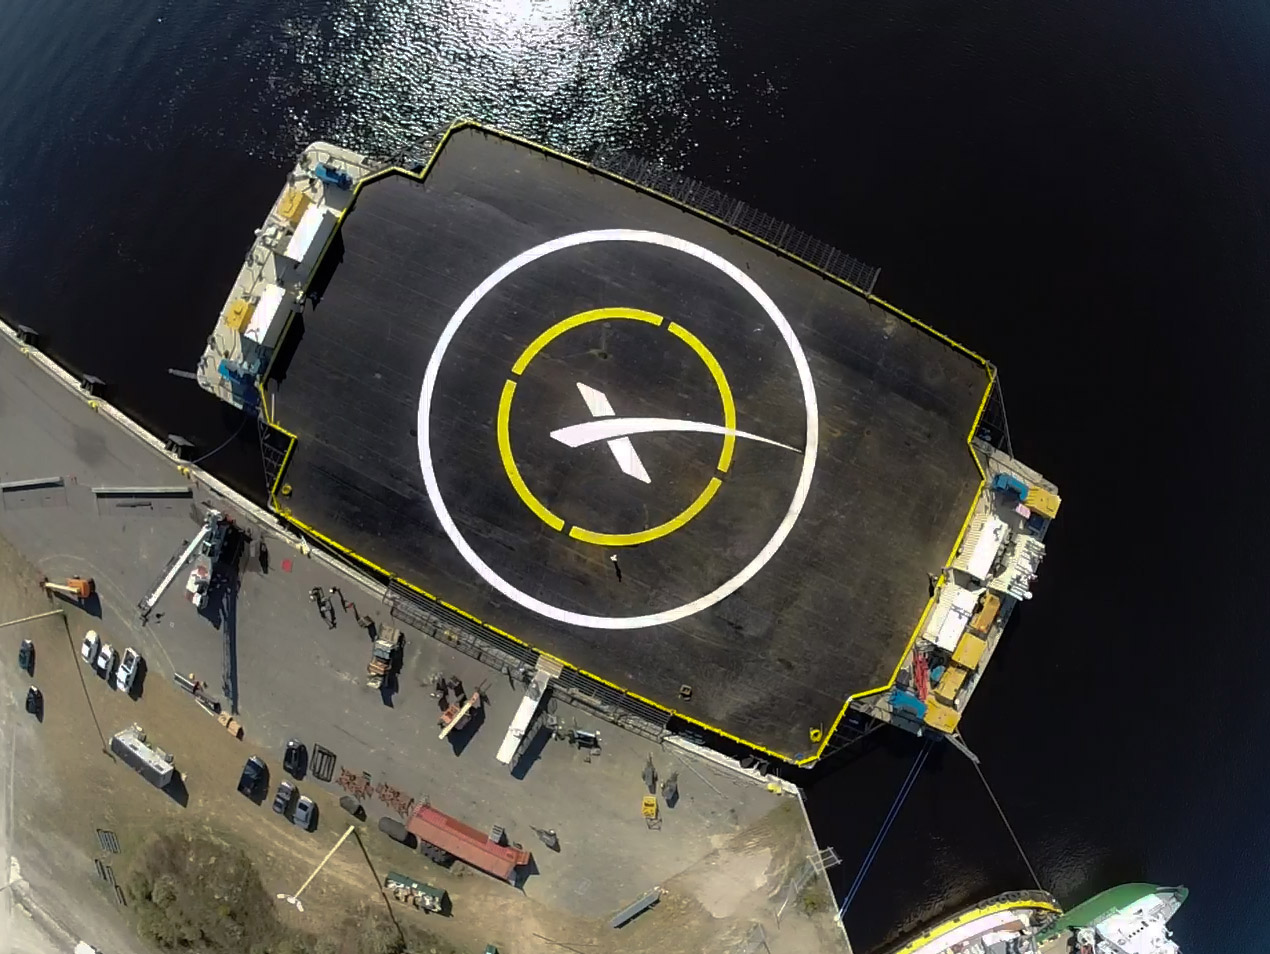 The SpaceX autonomous ocean drone platform Image Credit: SpaceX